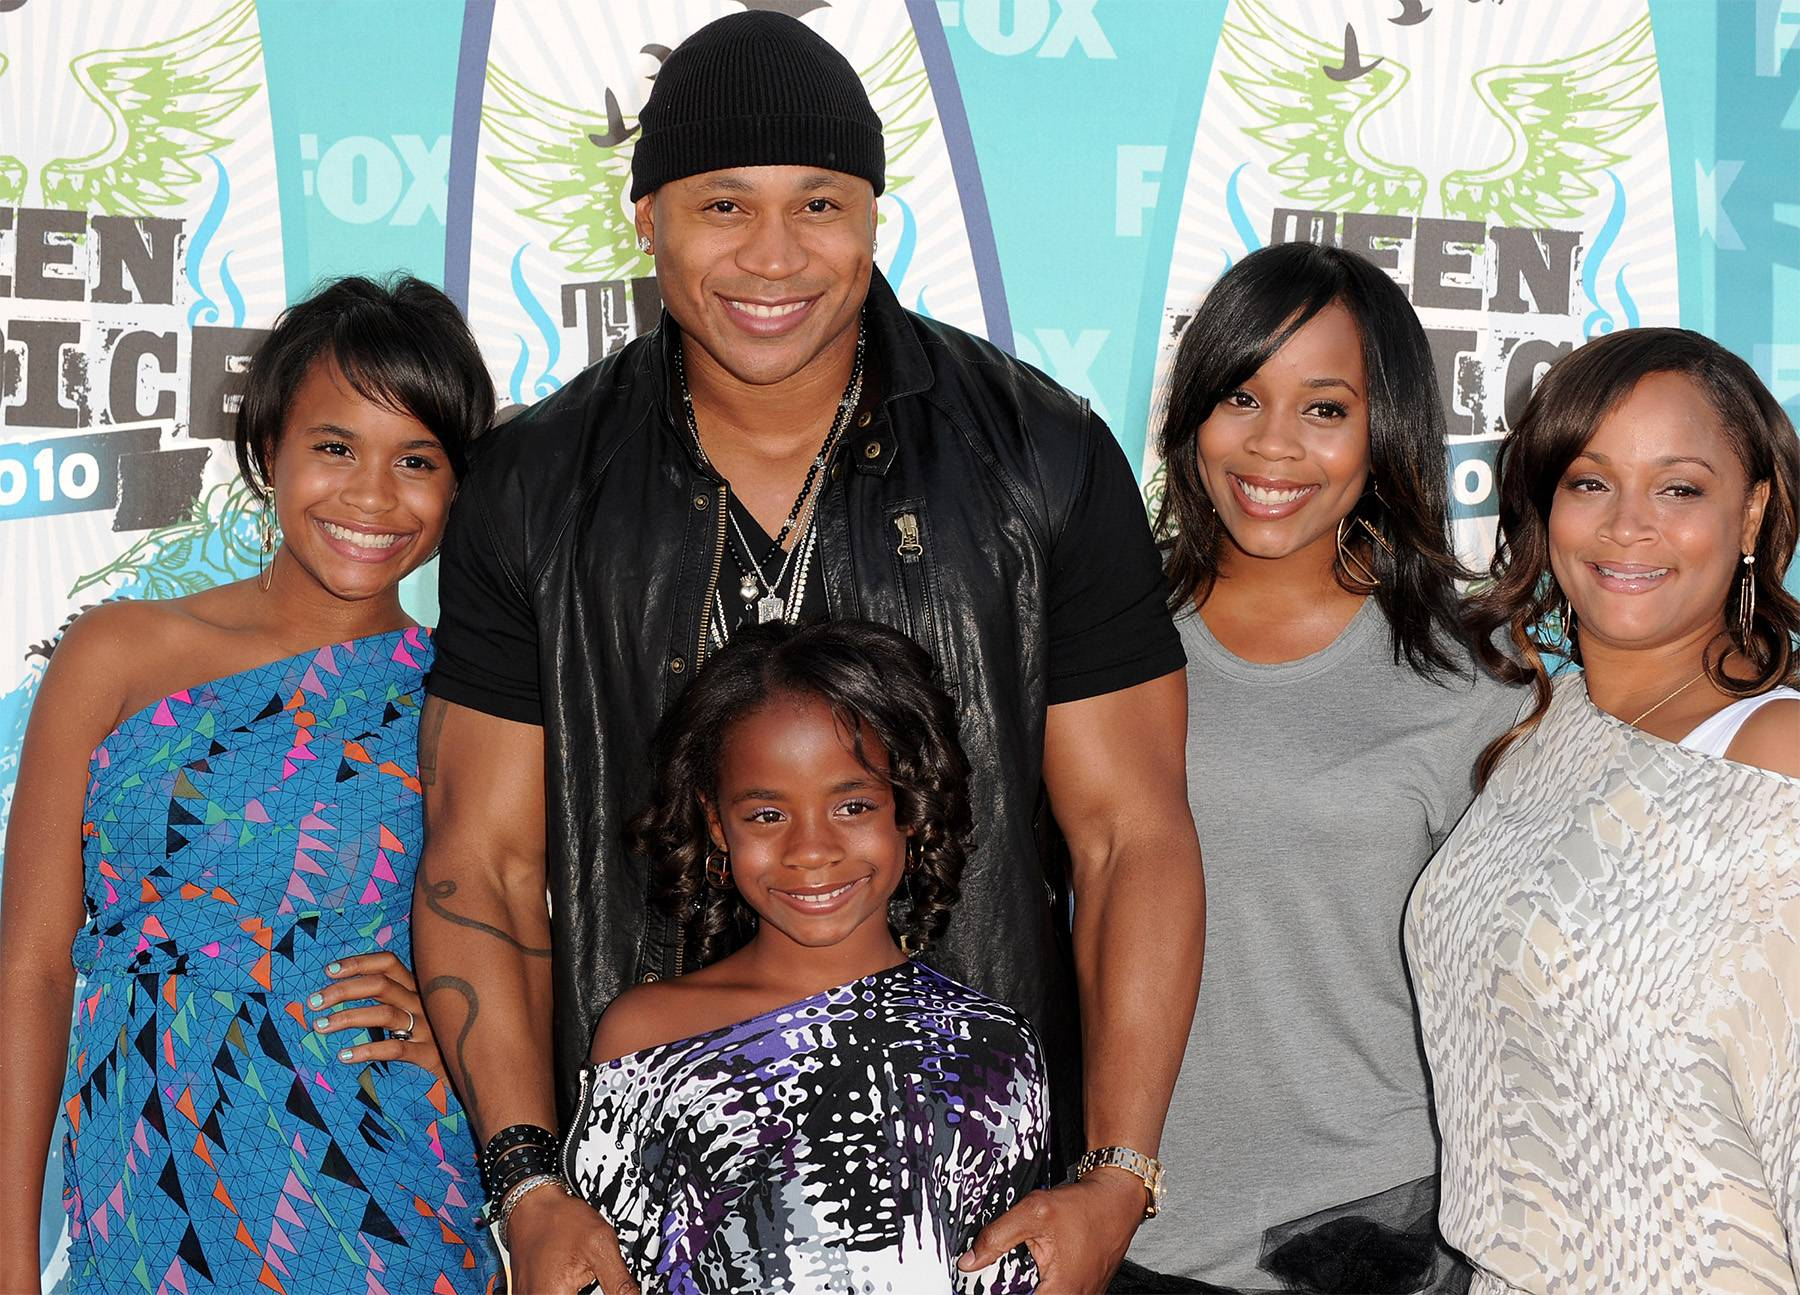 LL Cool J and His Family - We couldn't go without mentioning his little soldier, Najee, who's missing from the photo.  (Photo: Alberto E. Rodriguez/Getty Images)